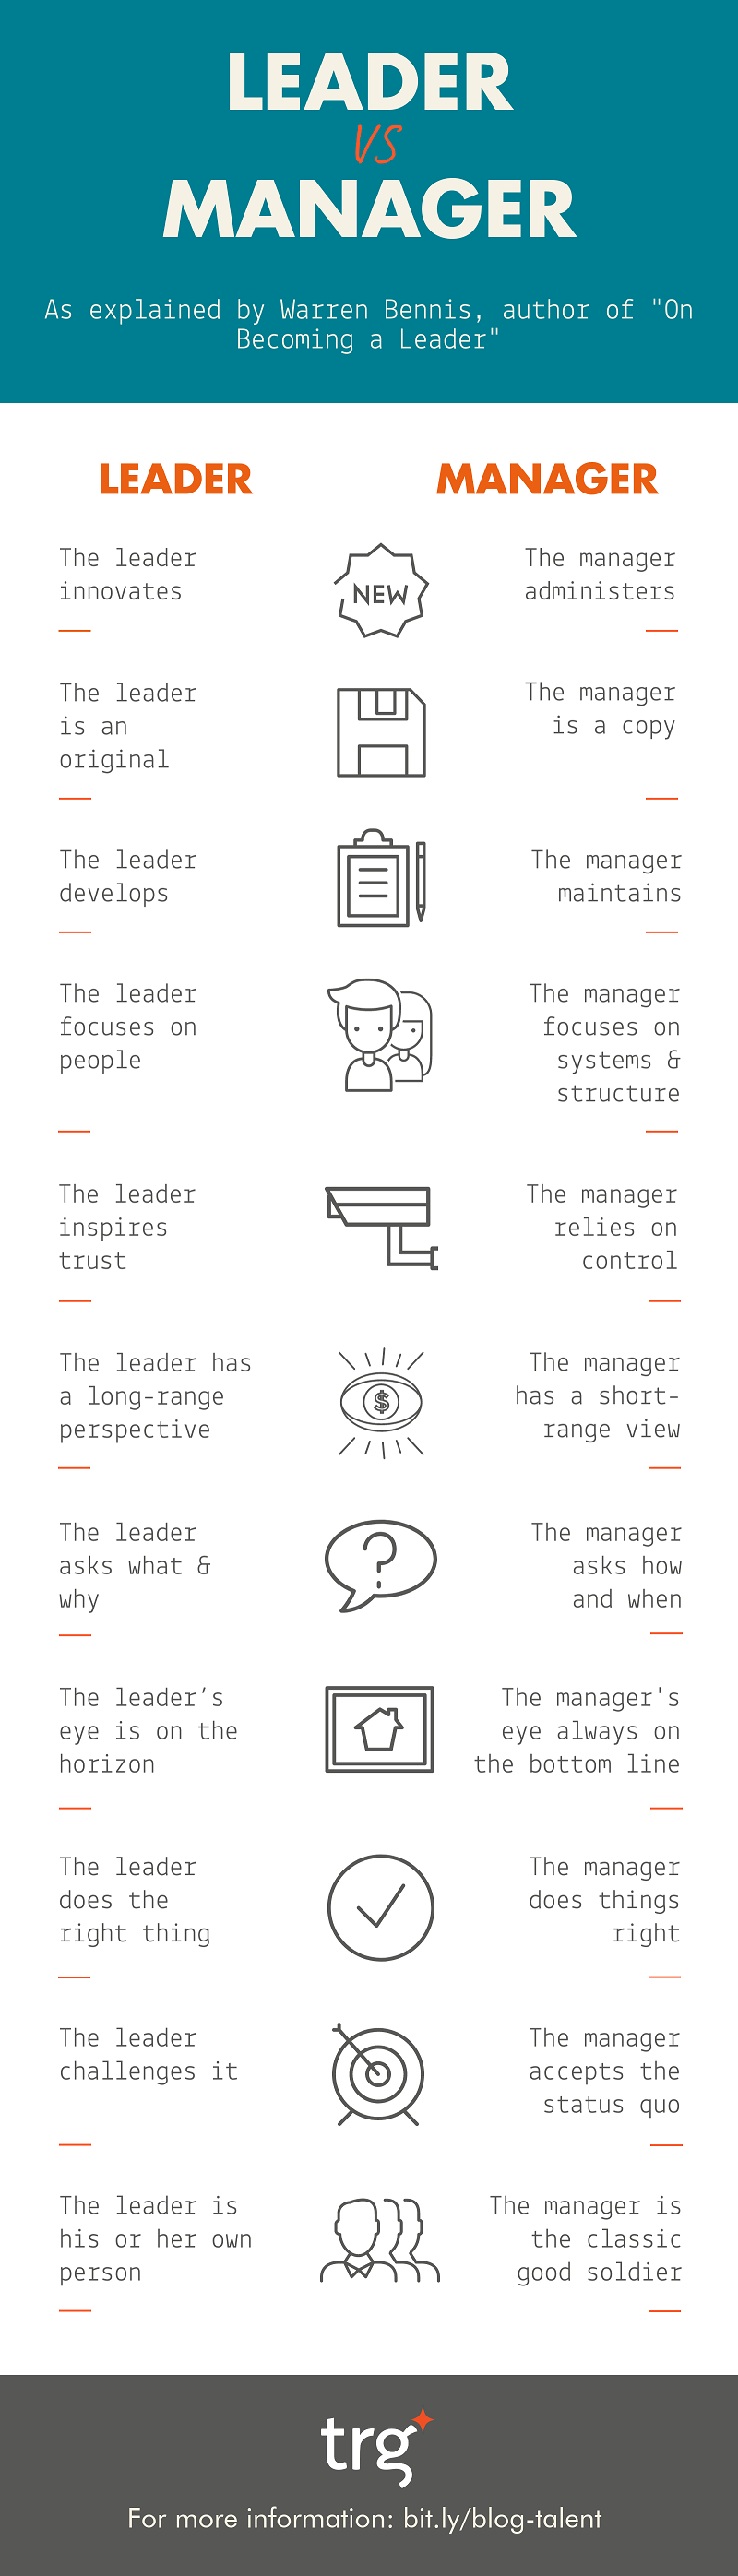 Infographic - Leader vs Manager